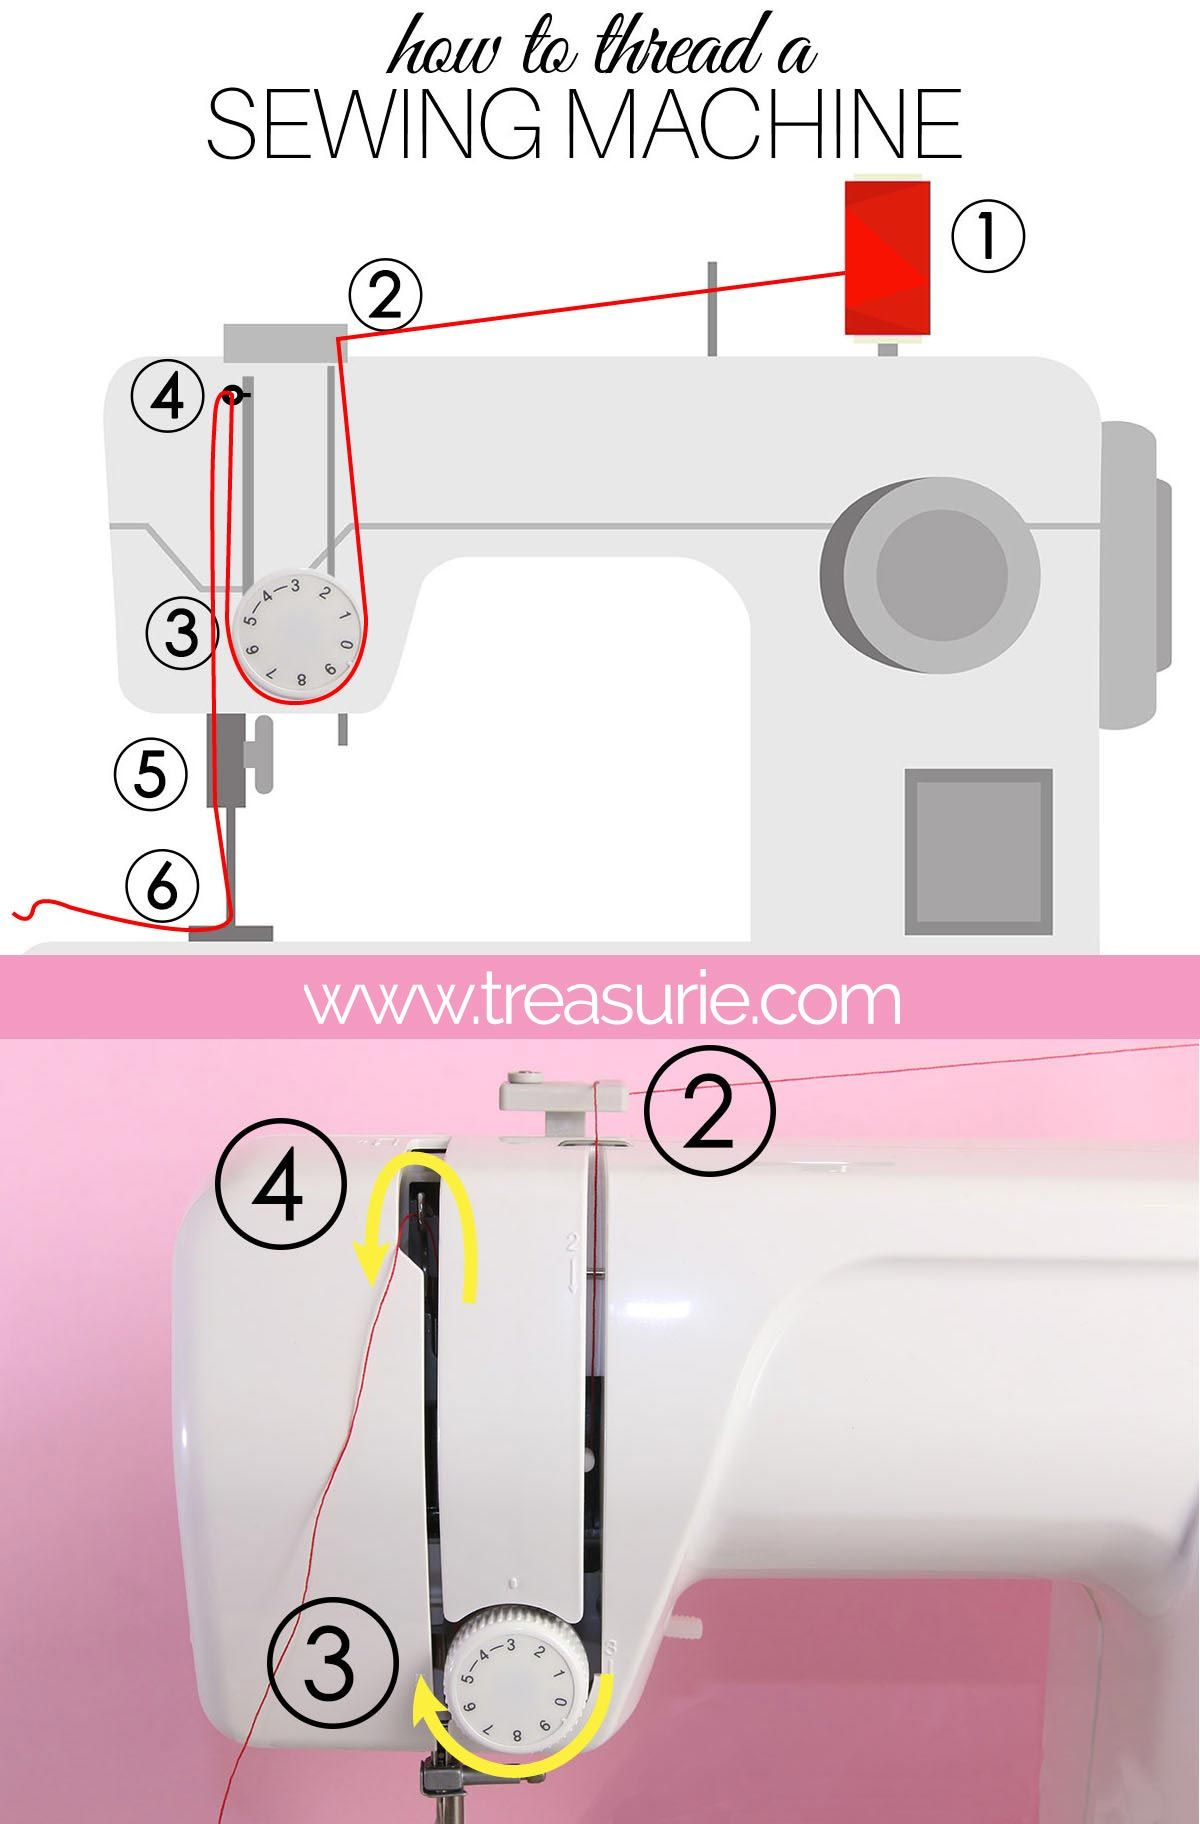 How To Thread A Sewing Machine Step By Step Treasurie Sewing Machine Sewing Machine Basics Sewing